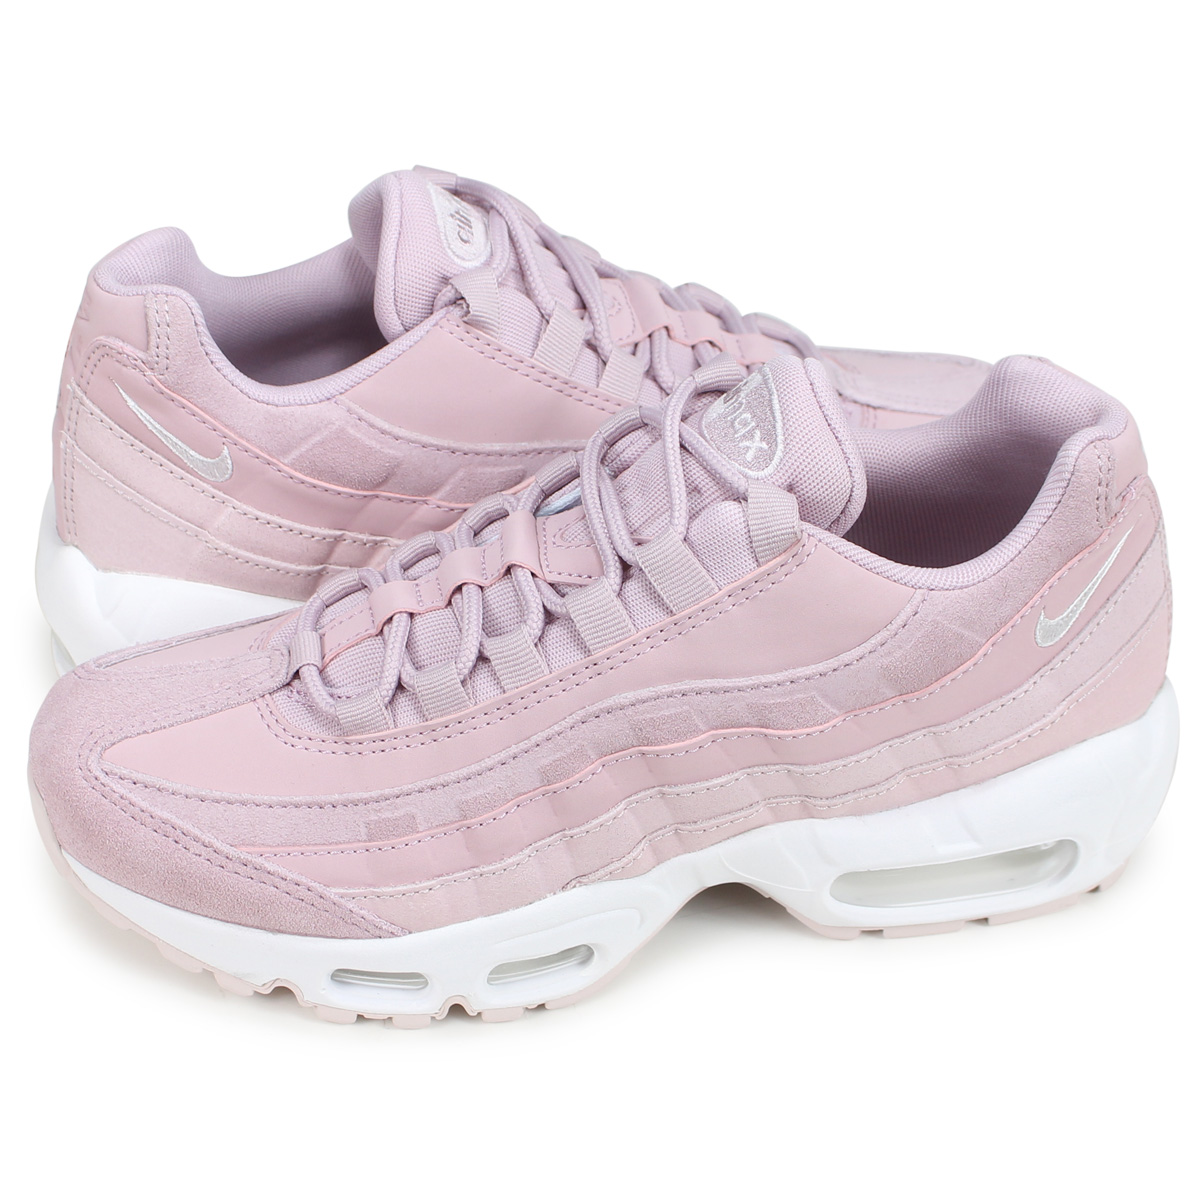 the best attitude eceaa 4b4cf Nike NIKE Air Max 95 sneakers Lady's WMNS AIR MAX 95 PREMIUM pink  807,443-503 [193]